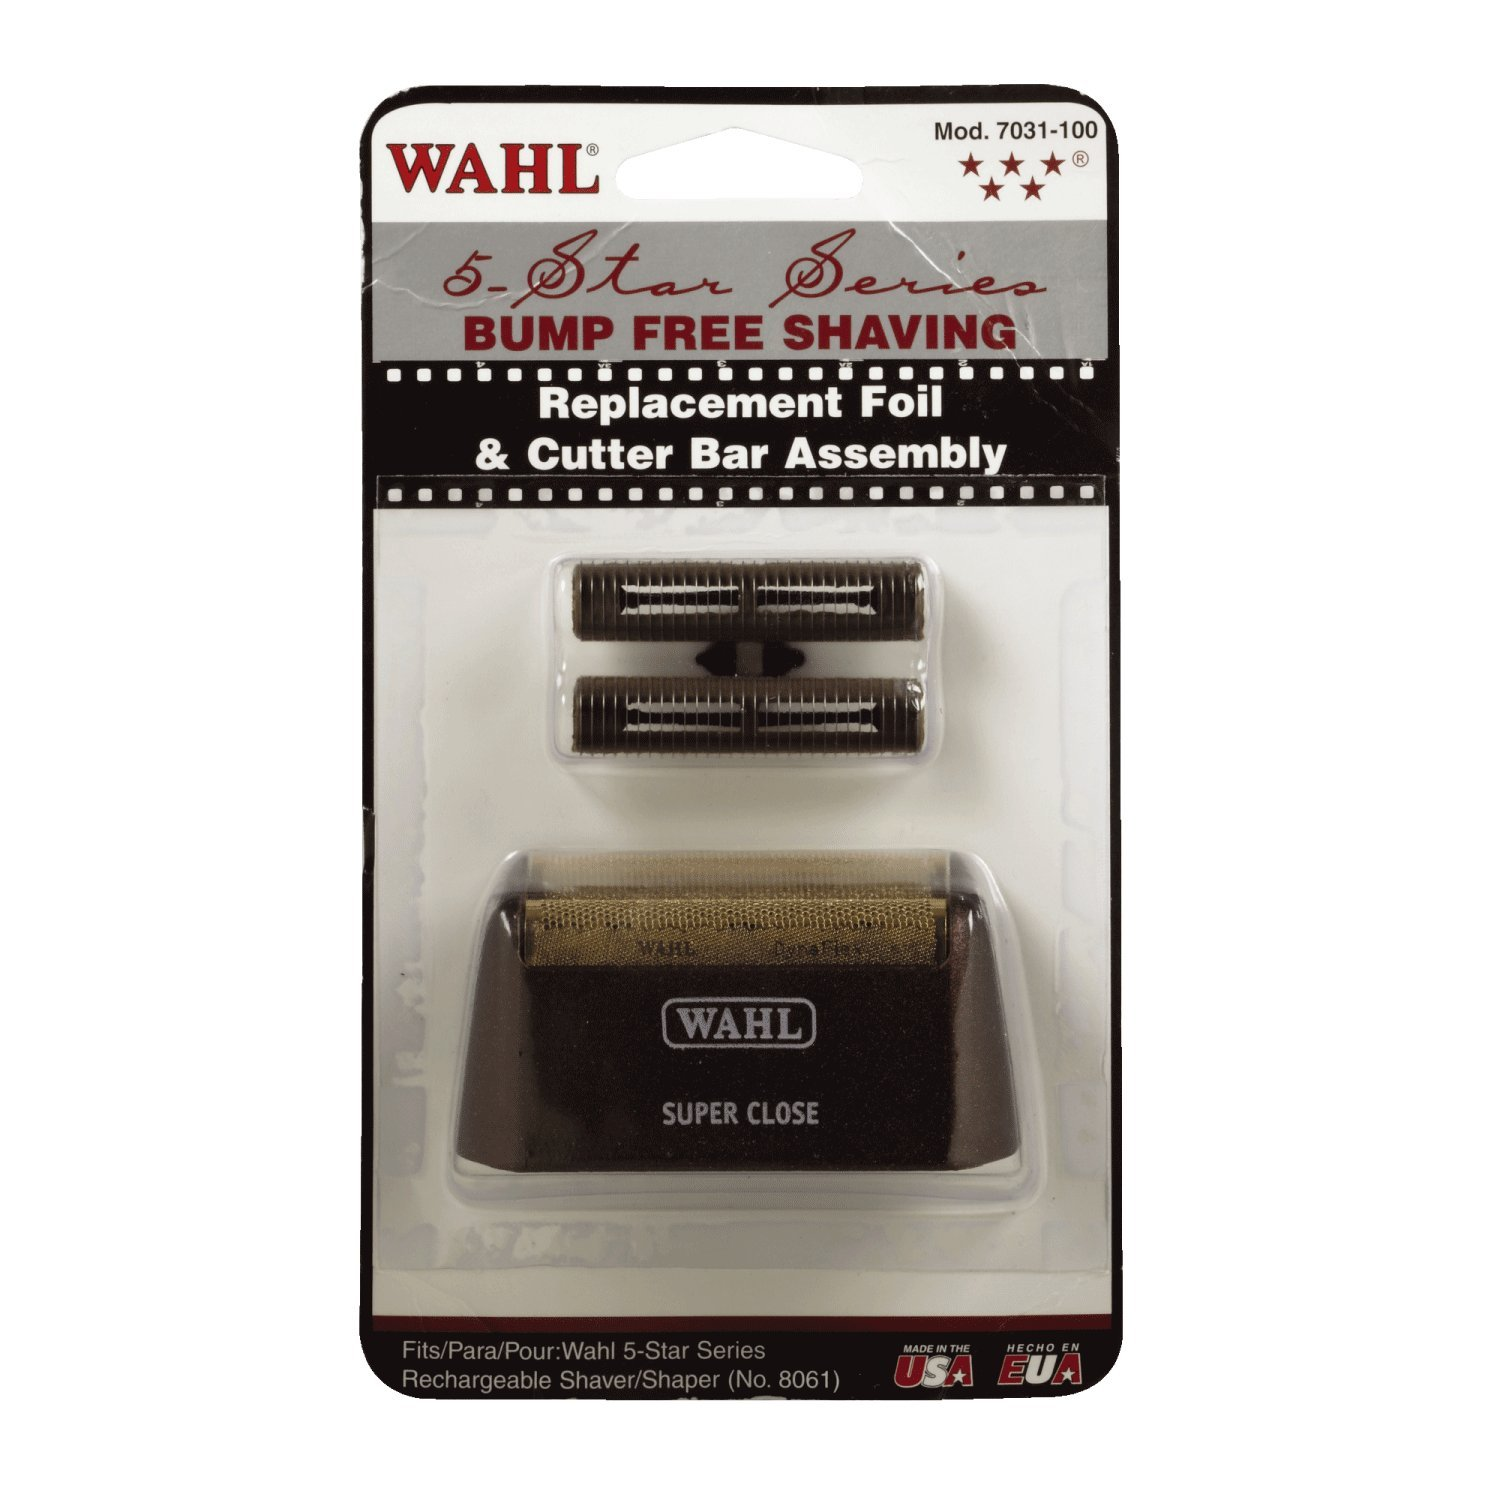 Wahl Professional Five Star Series #7031-100 Replacement Foil and Cutter Bar Assembly – Red & Gold – Super Close